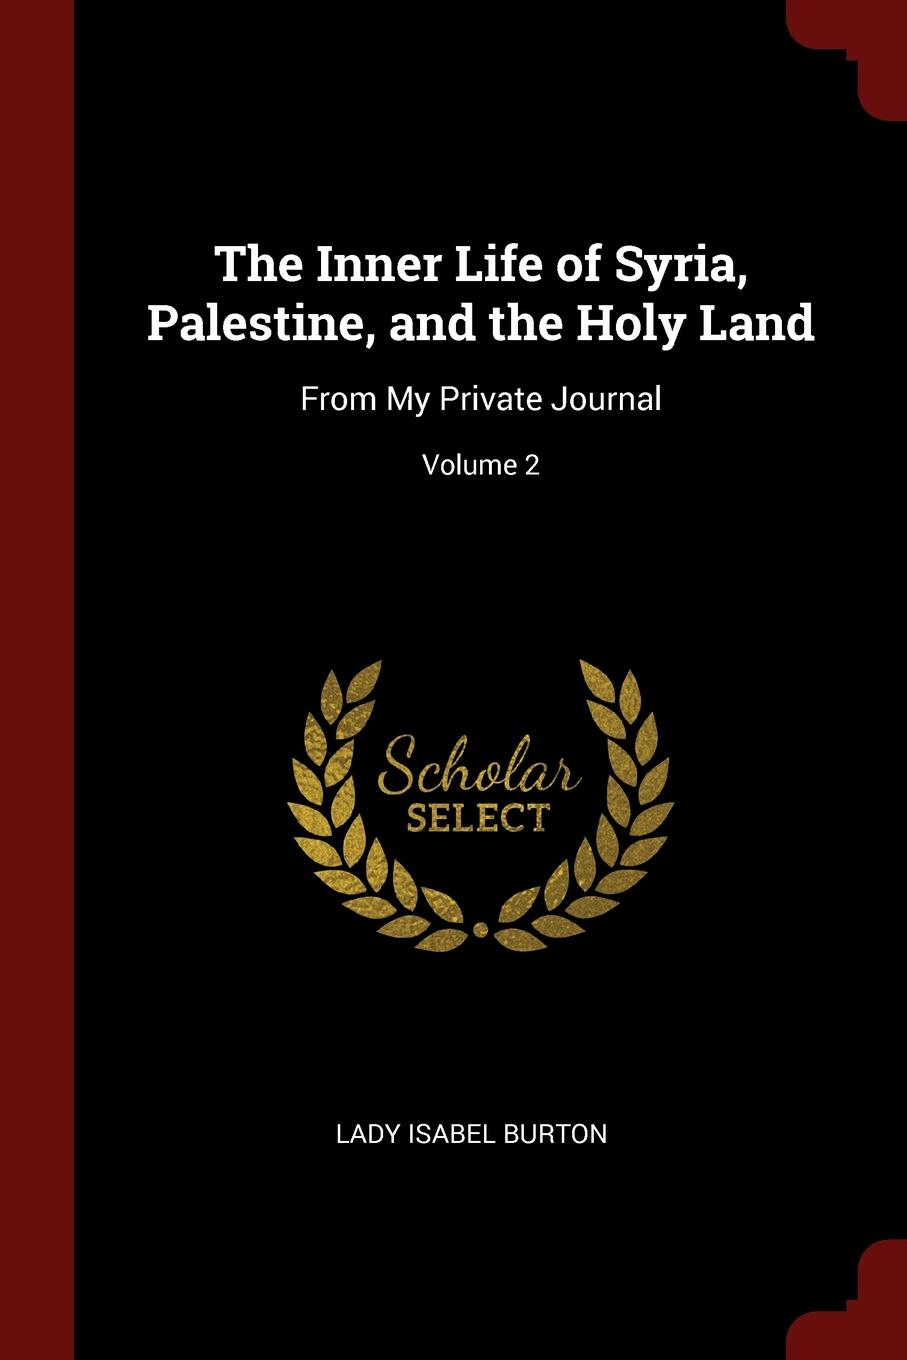 The Inner Life of Syria, Palestine, and the Holy Land. From My Private Journal; Volume 2